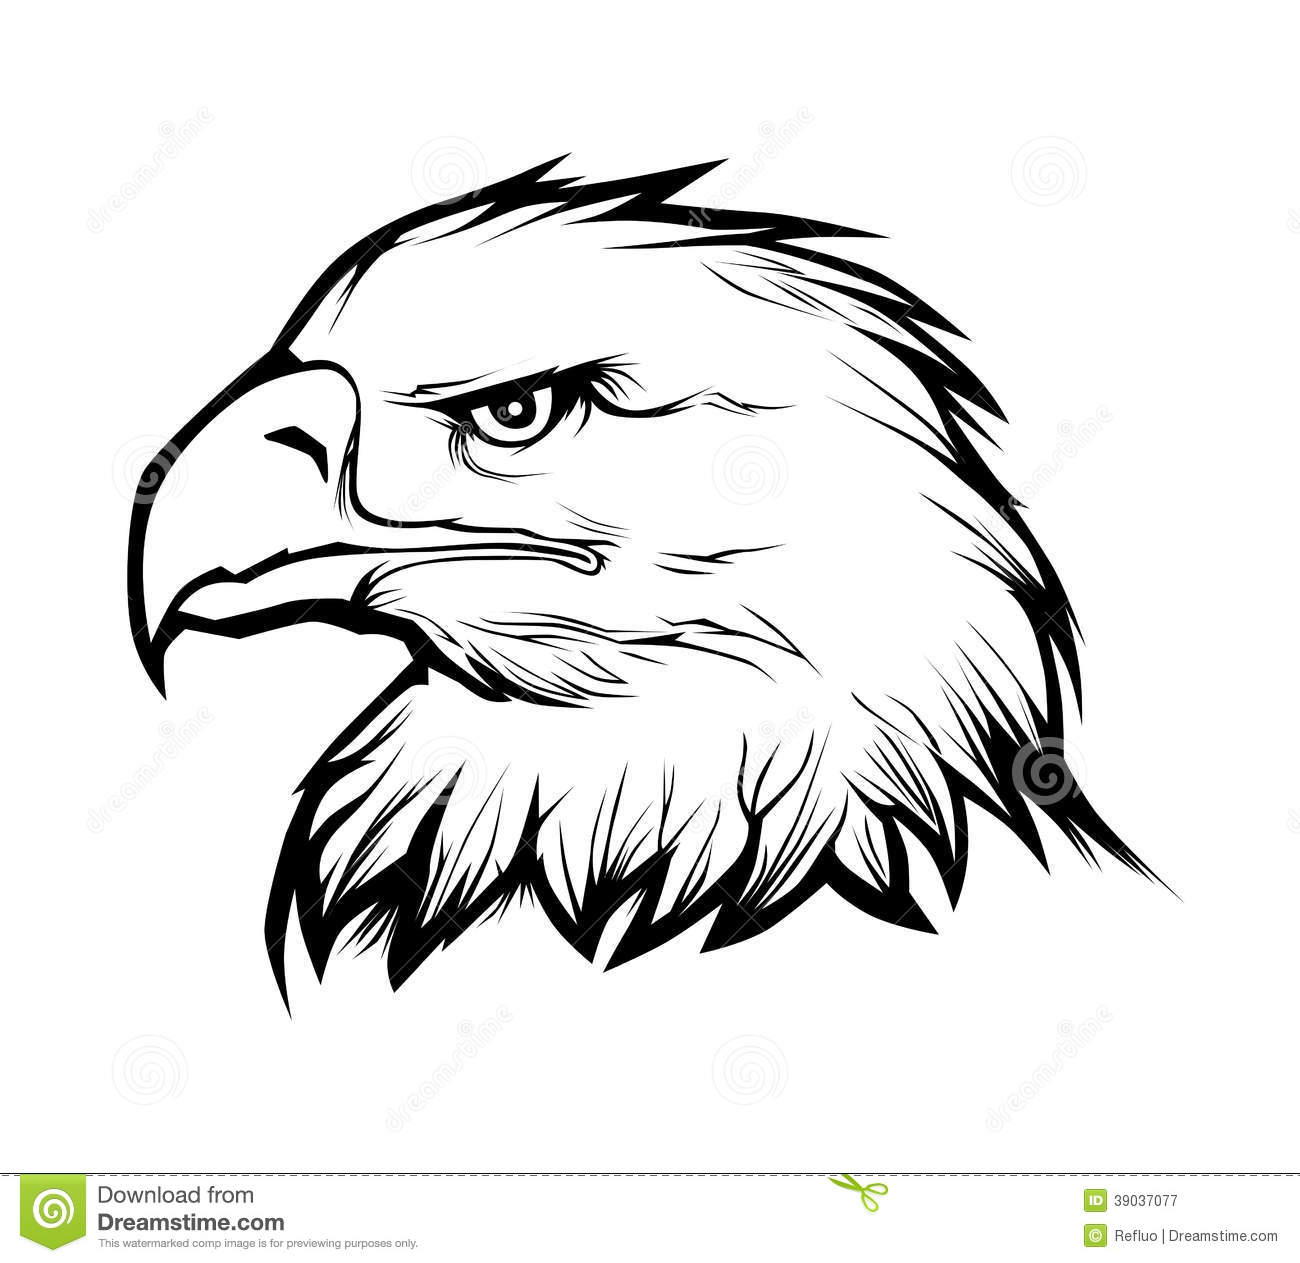 16 Eagle Head Vector Images - Black and White Eagle Head ...